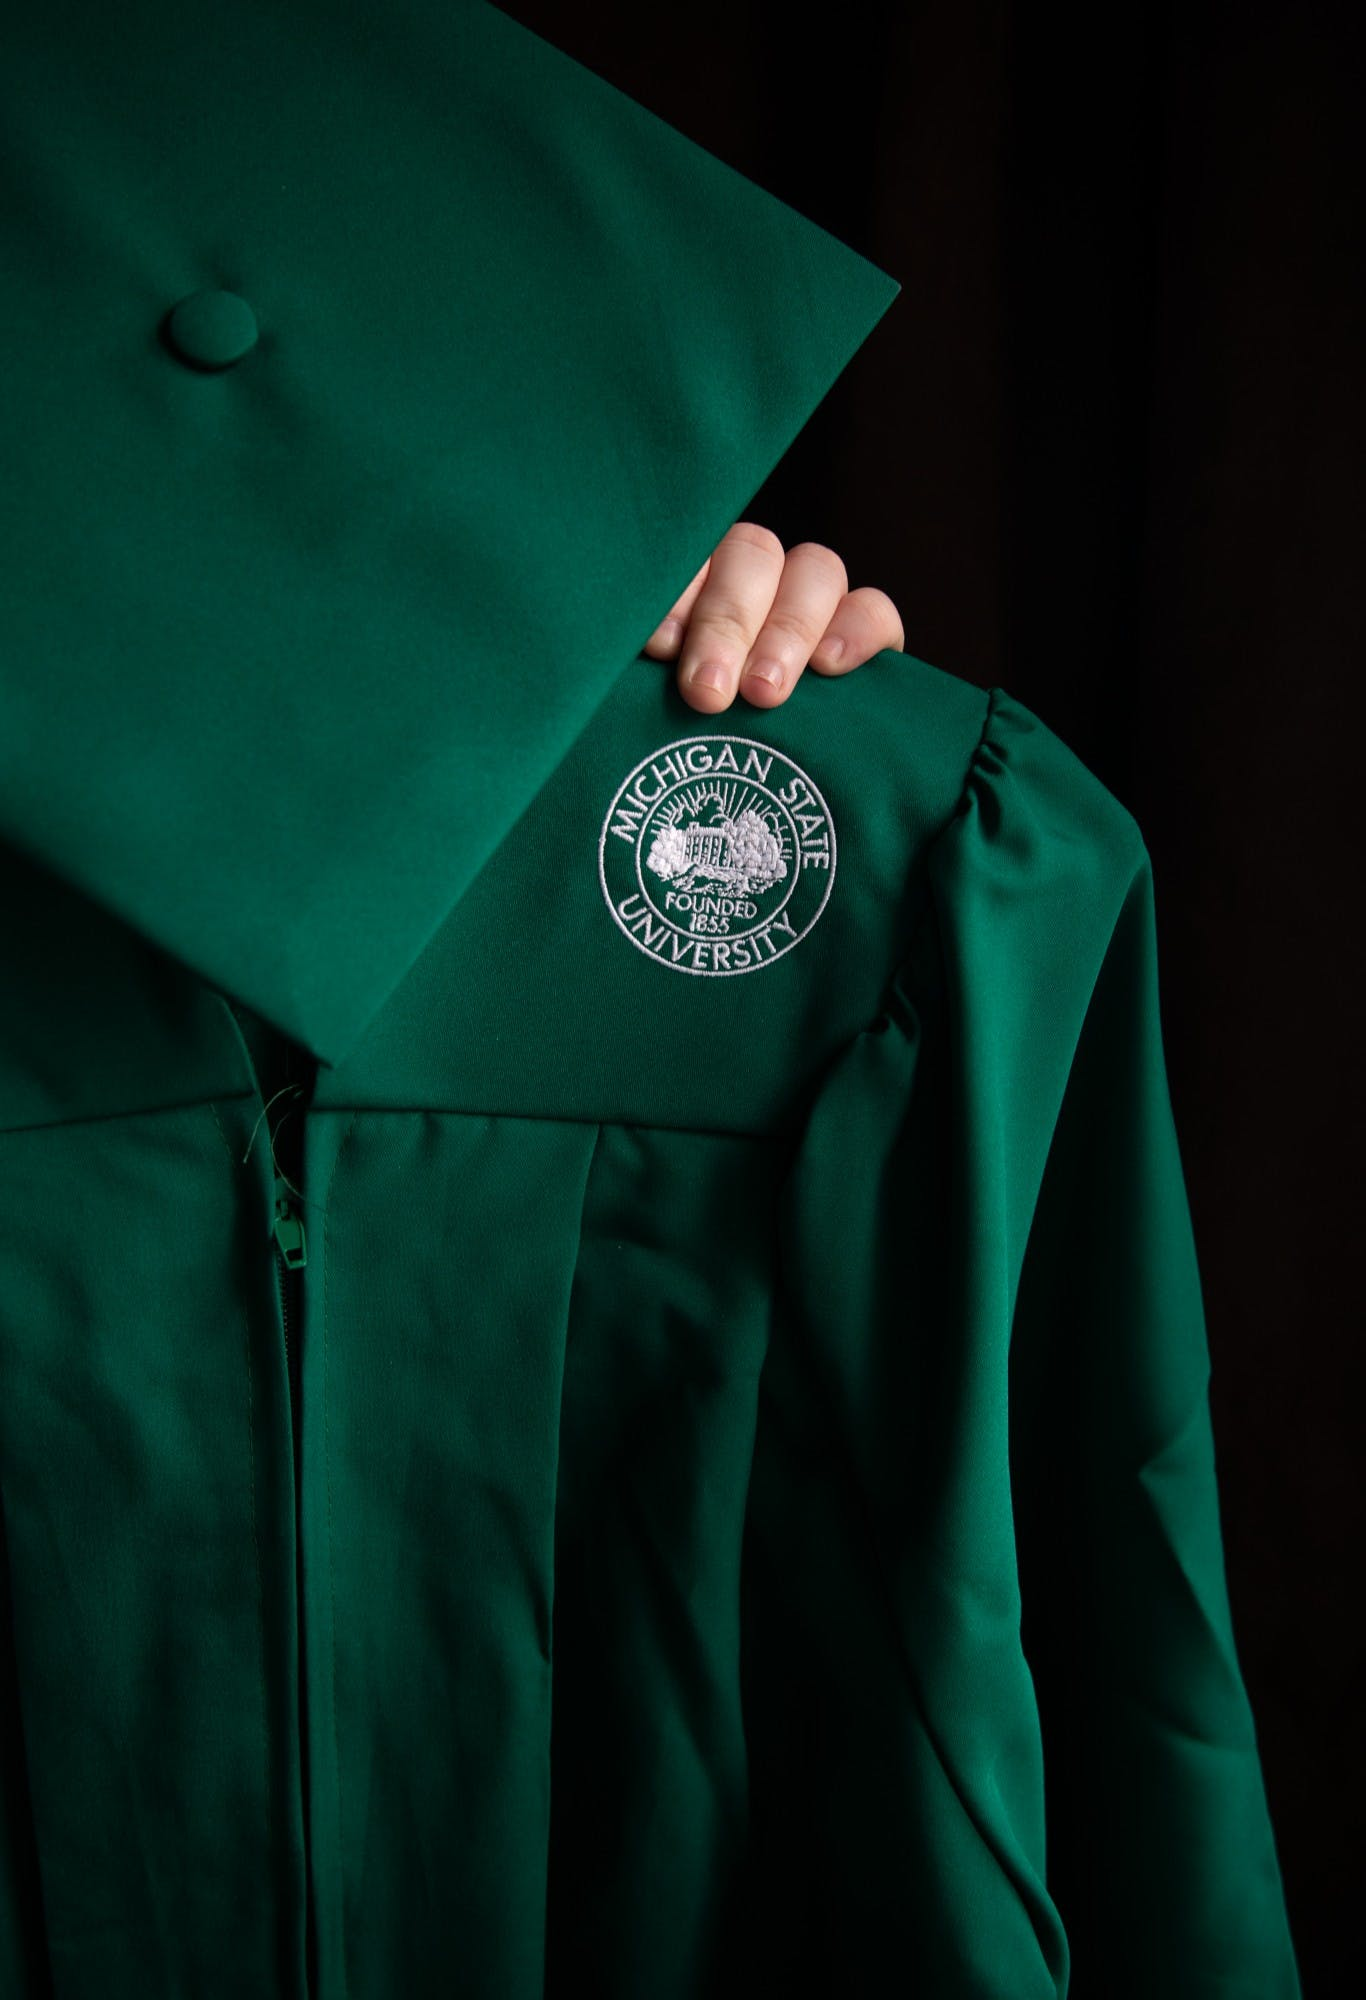 An image of a cap and gown againt a black background.